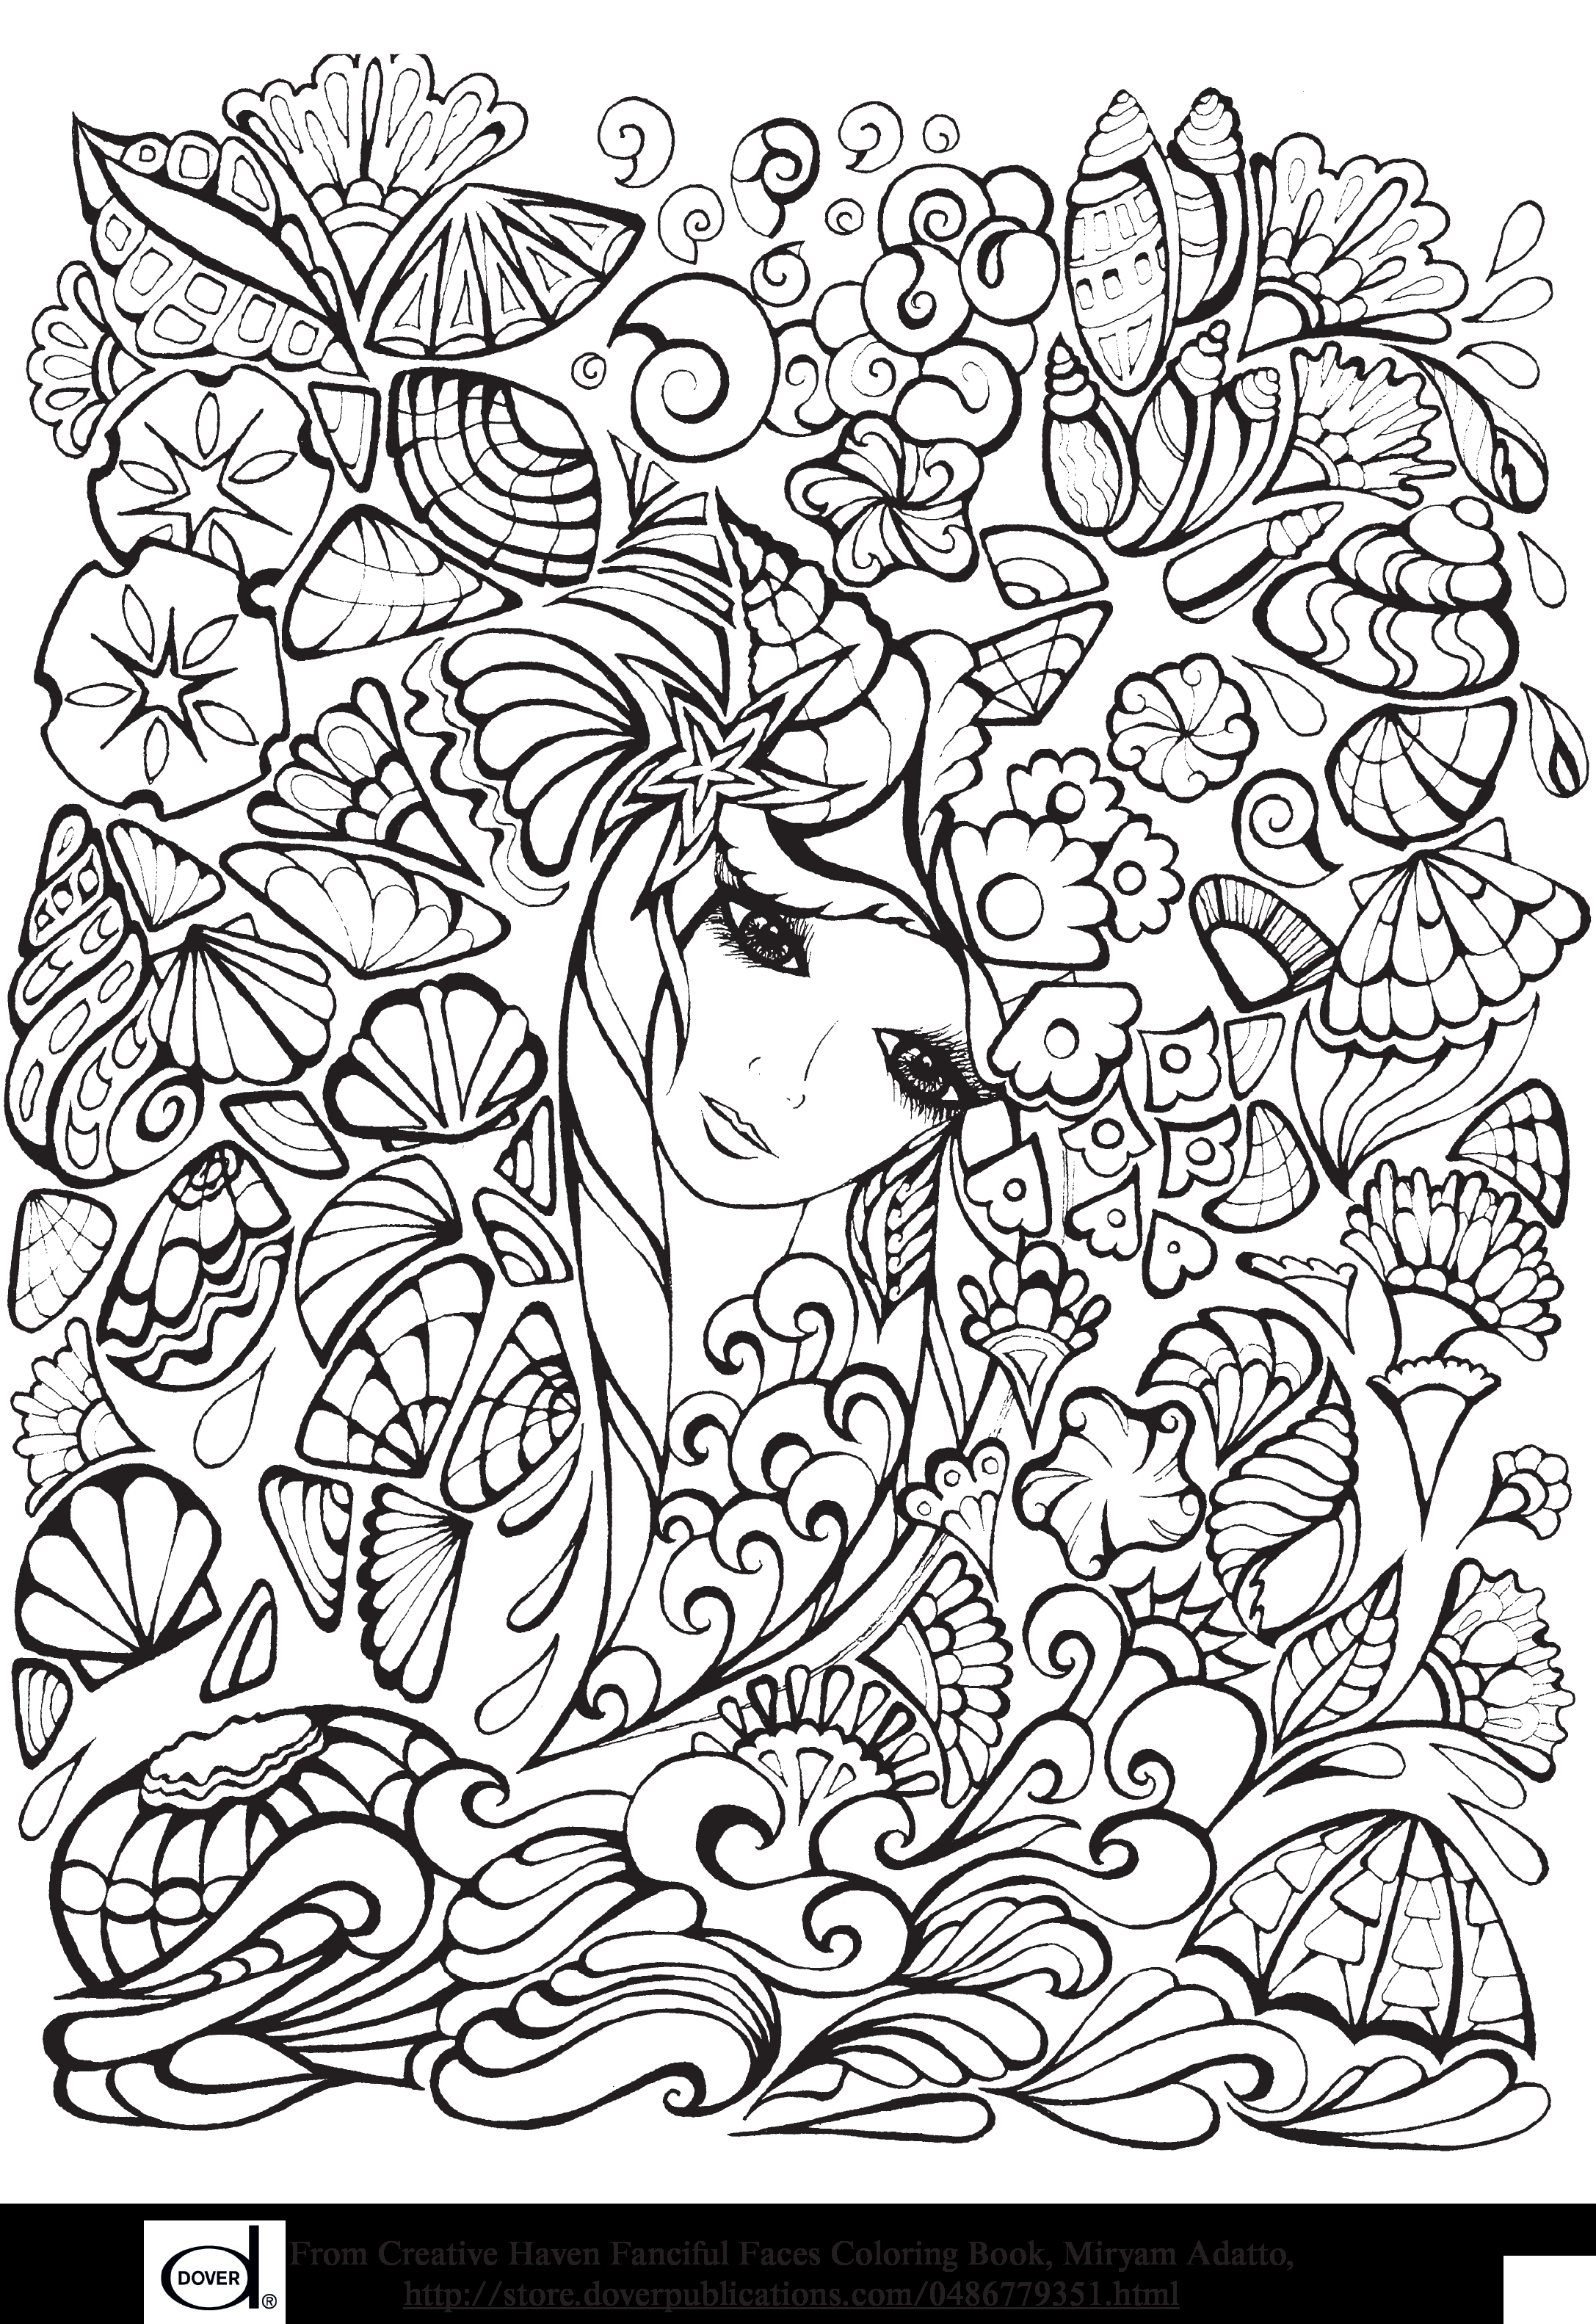 Free Dover Coloring Pages  Printable 17j - Save it to your computer